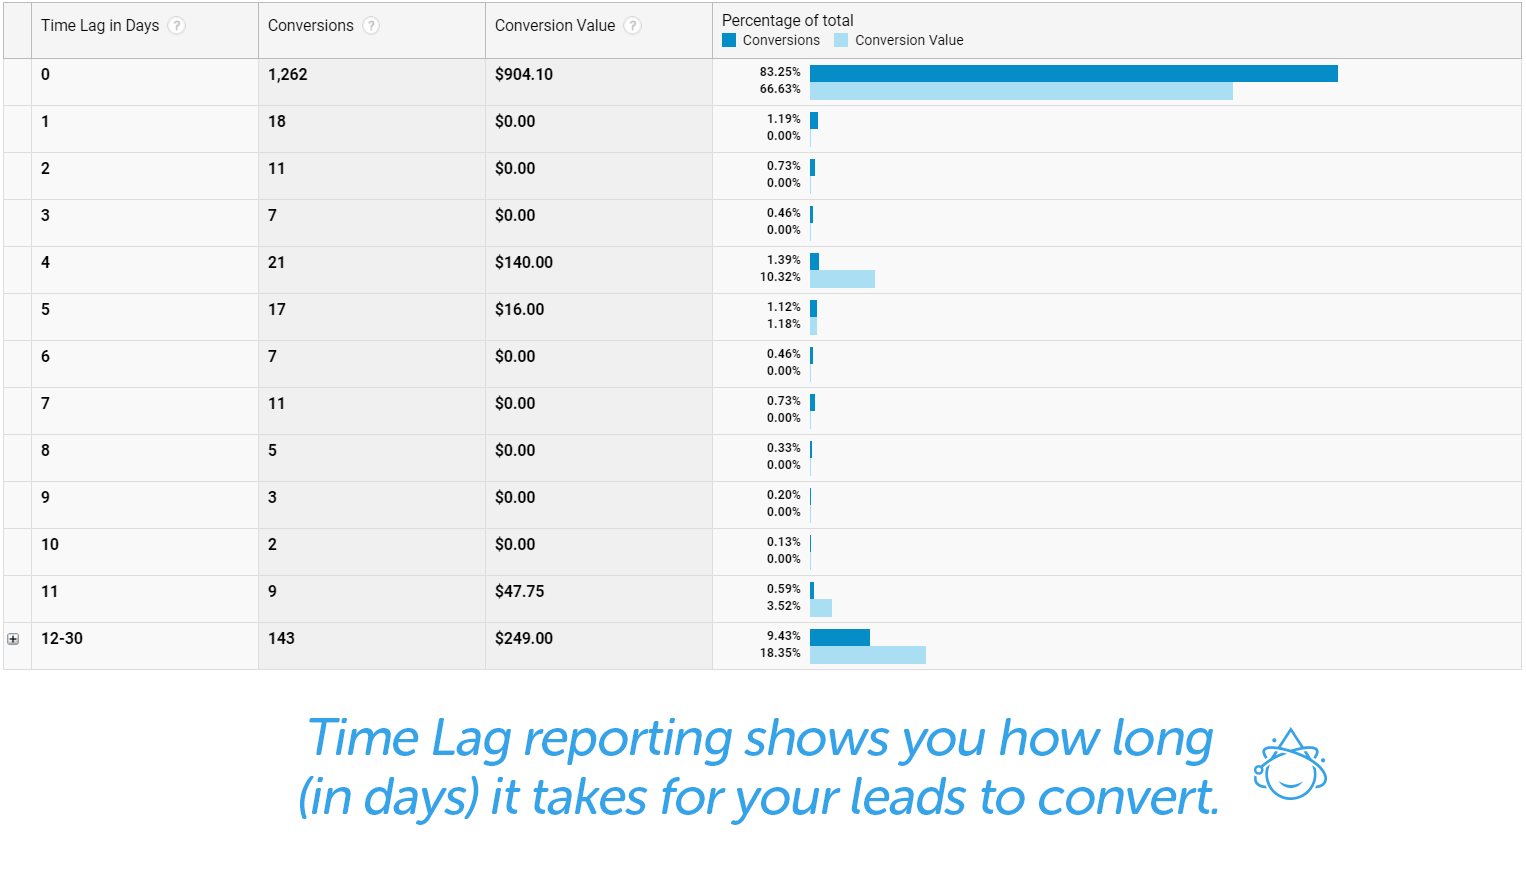 Time Lag reporting shows you how long (in days) it takes for your leads to convert.